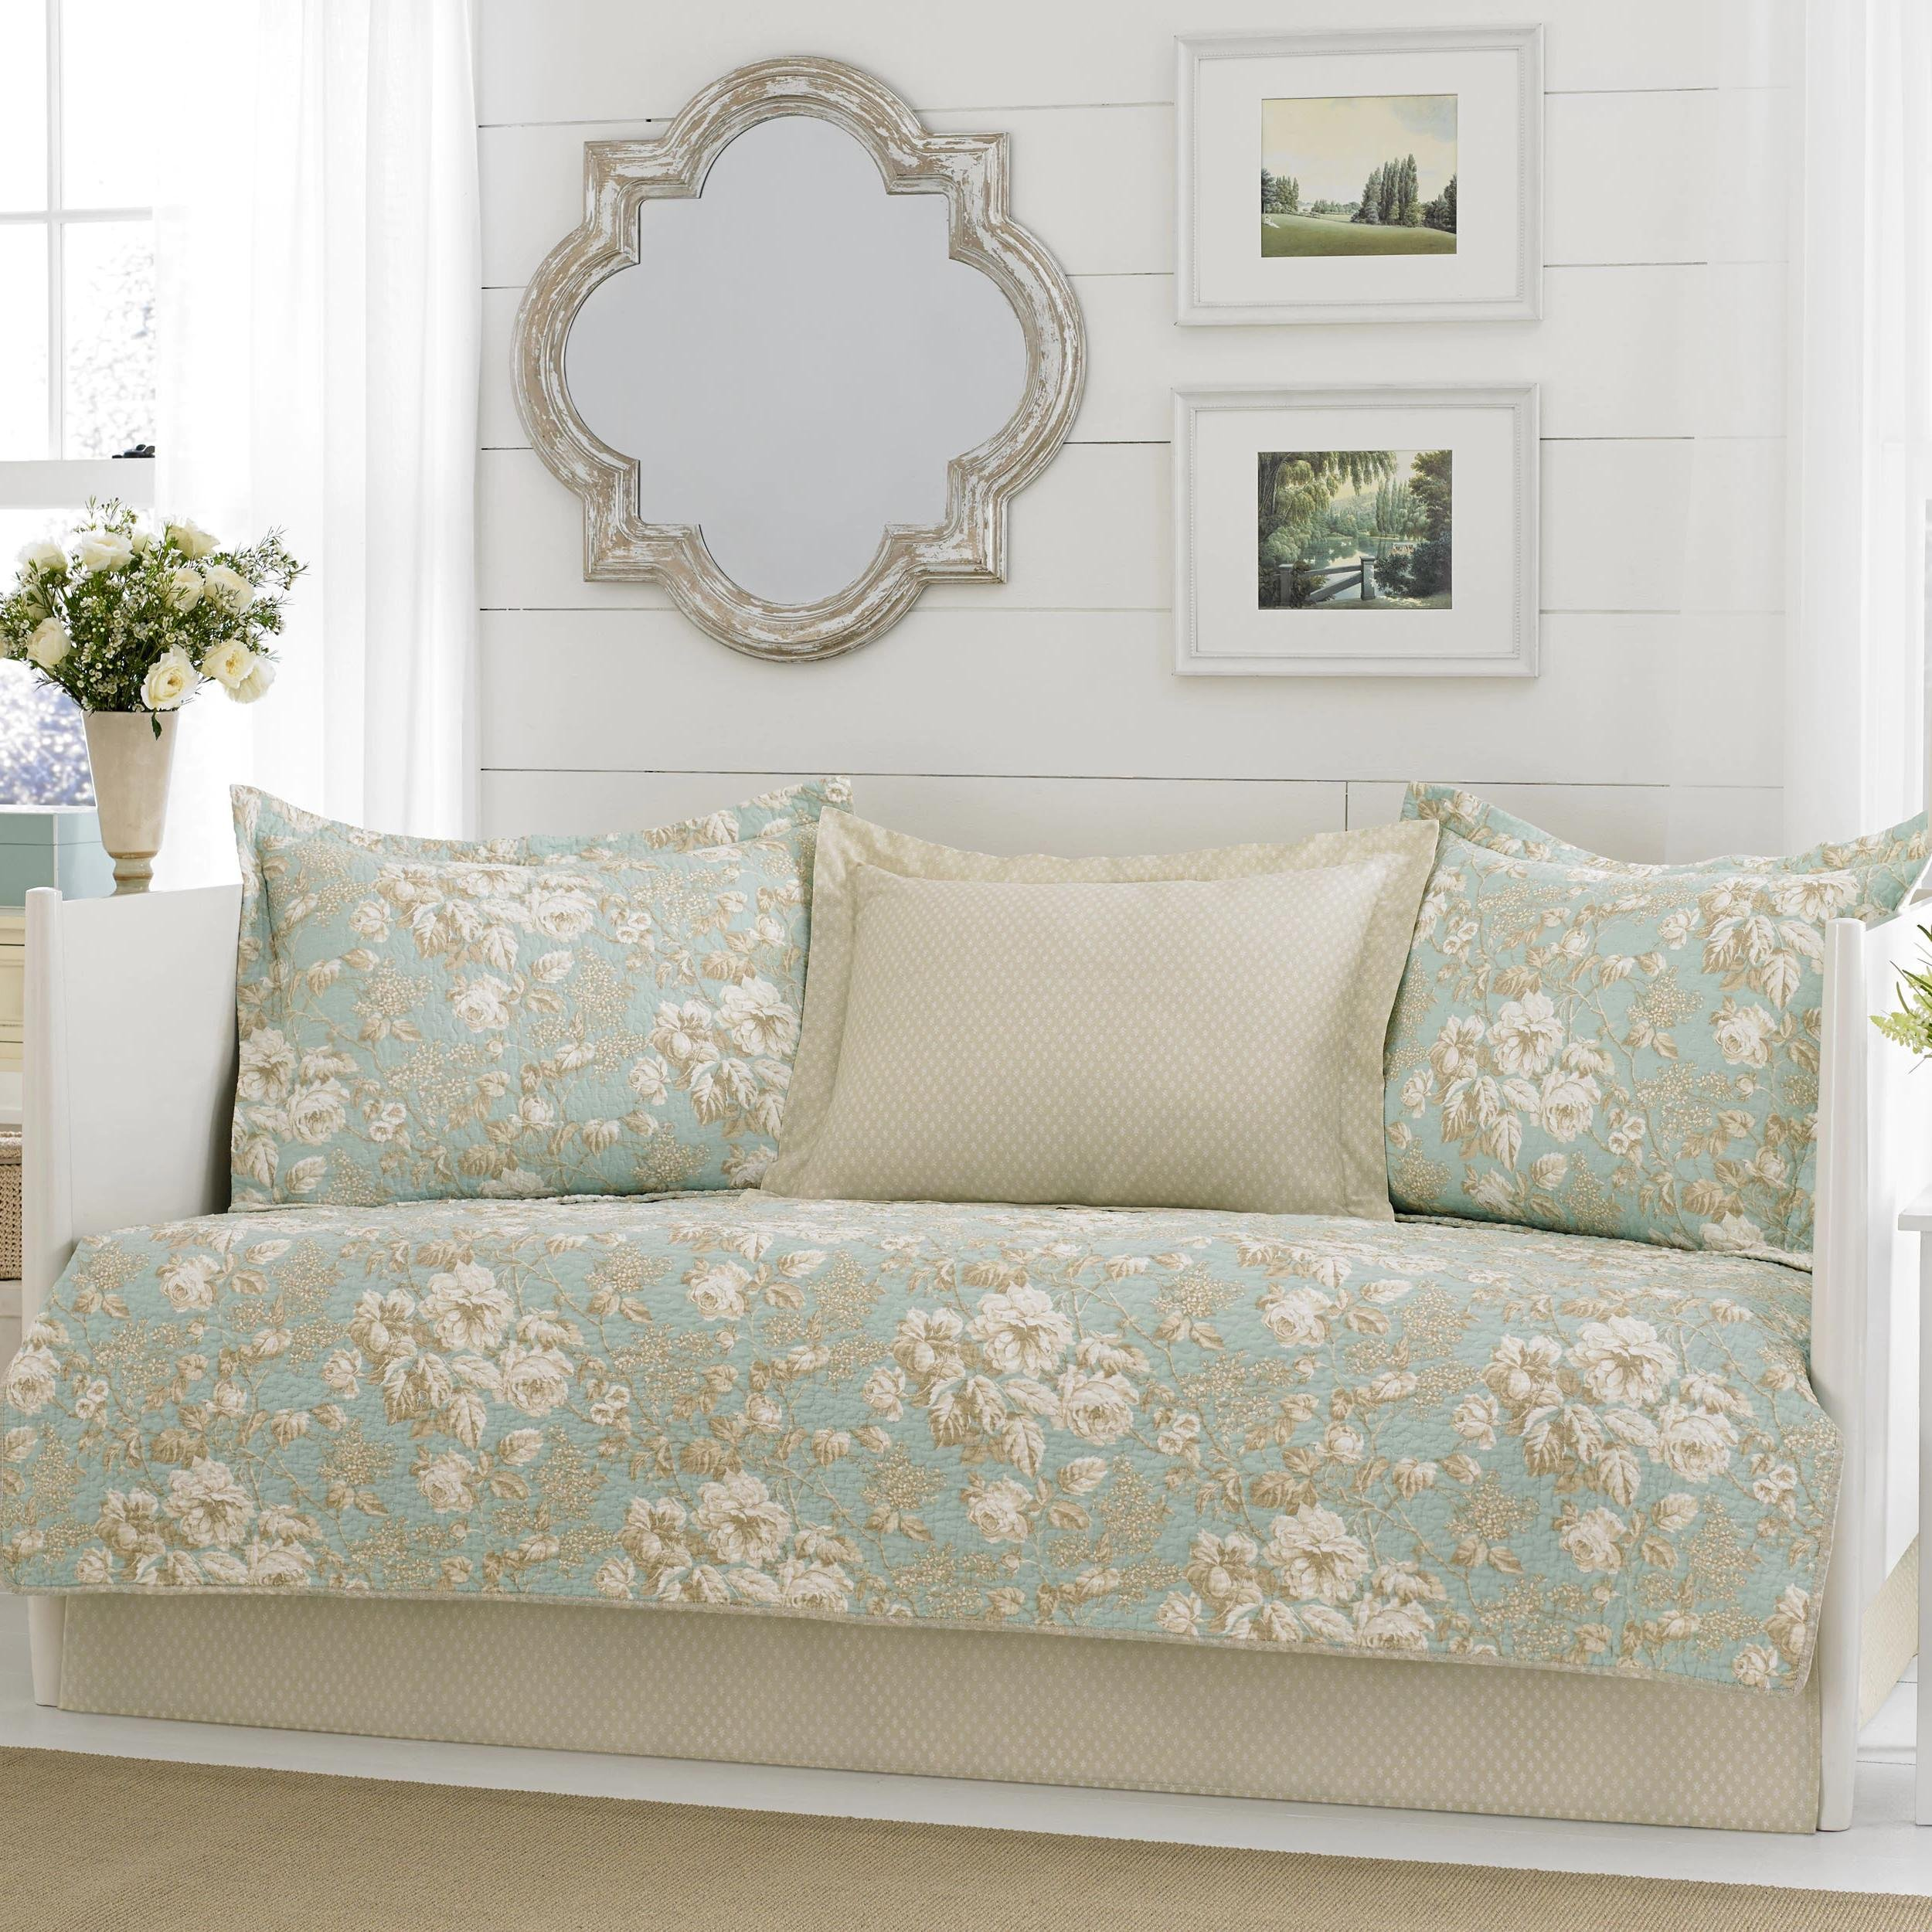 Green, Off-White and Tan Reversible, 5-piece Cotton Daybed Cover Set with Bedskirt and Floral Pattern Included Cross Scented Candle Tart